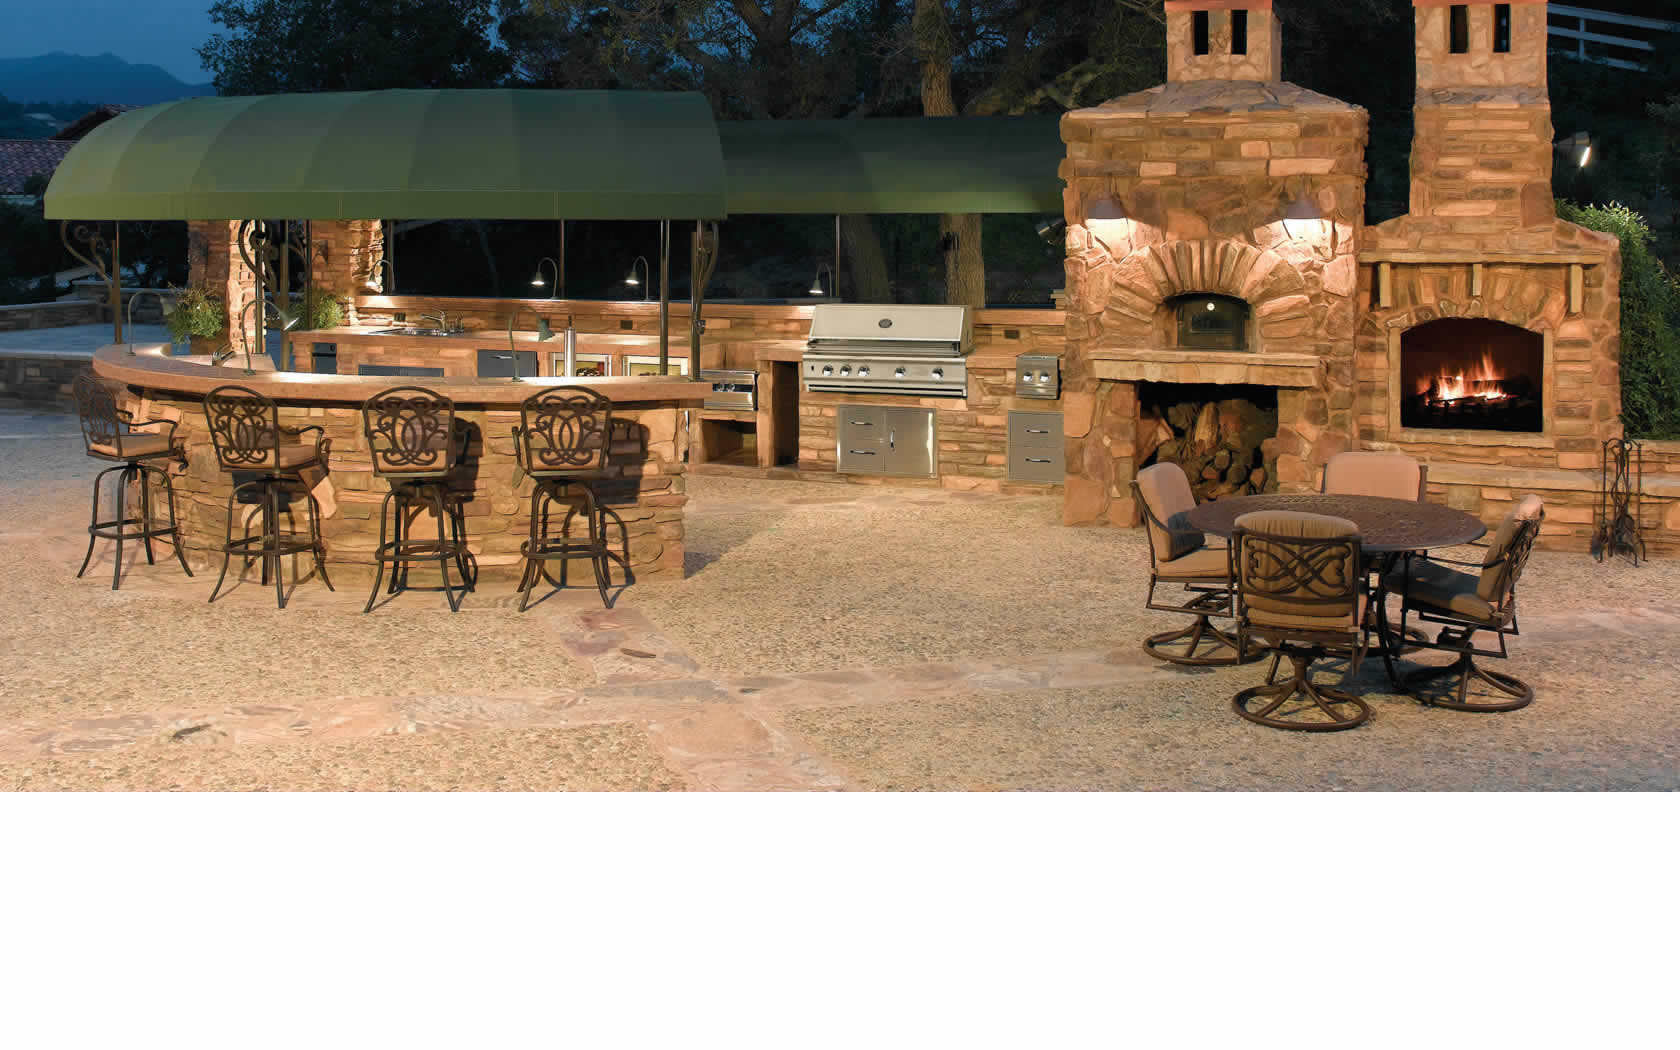 Las Vegas Outdoor Kitchens and Barbecues | Las Vegas ...